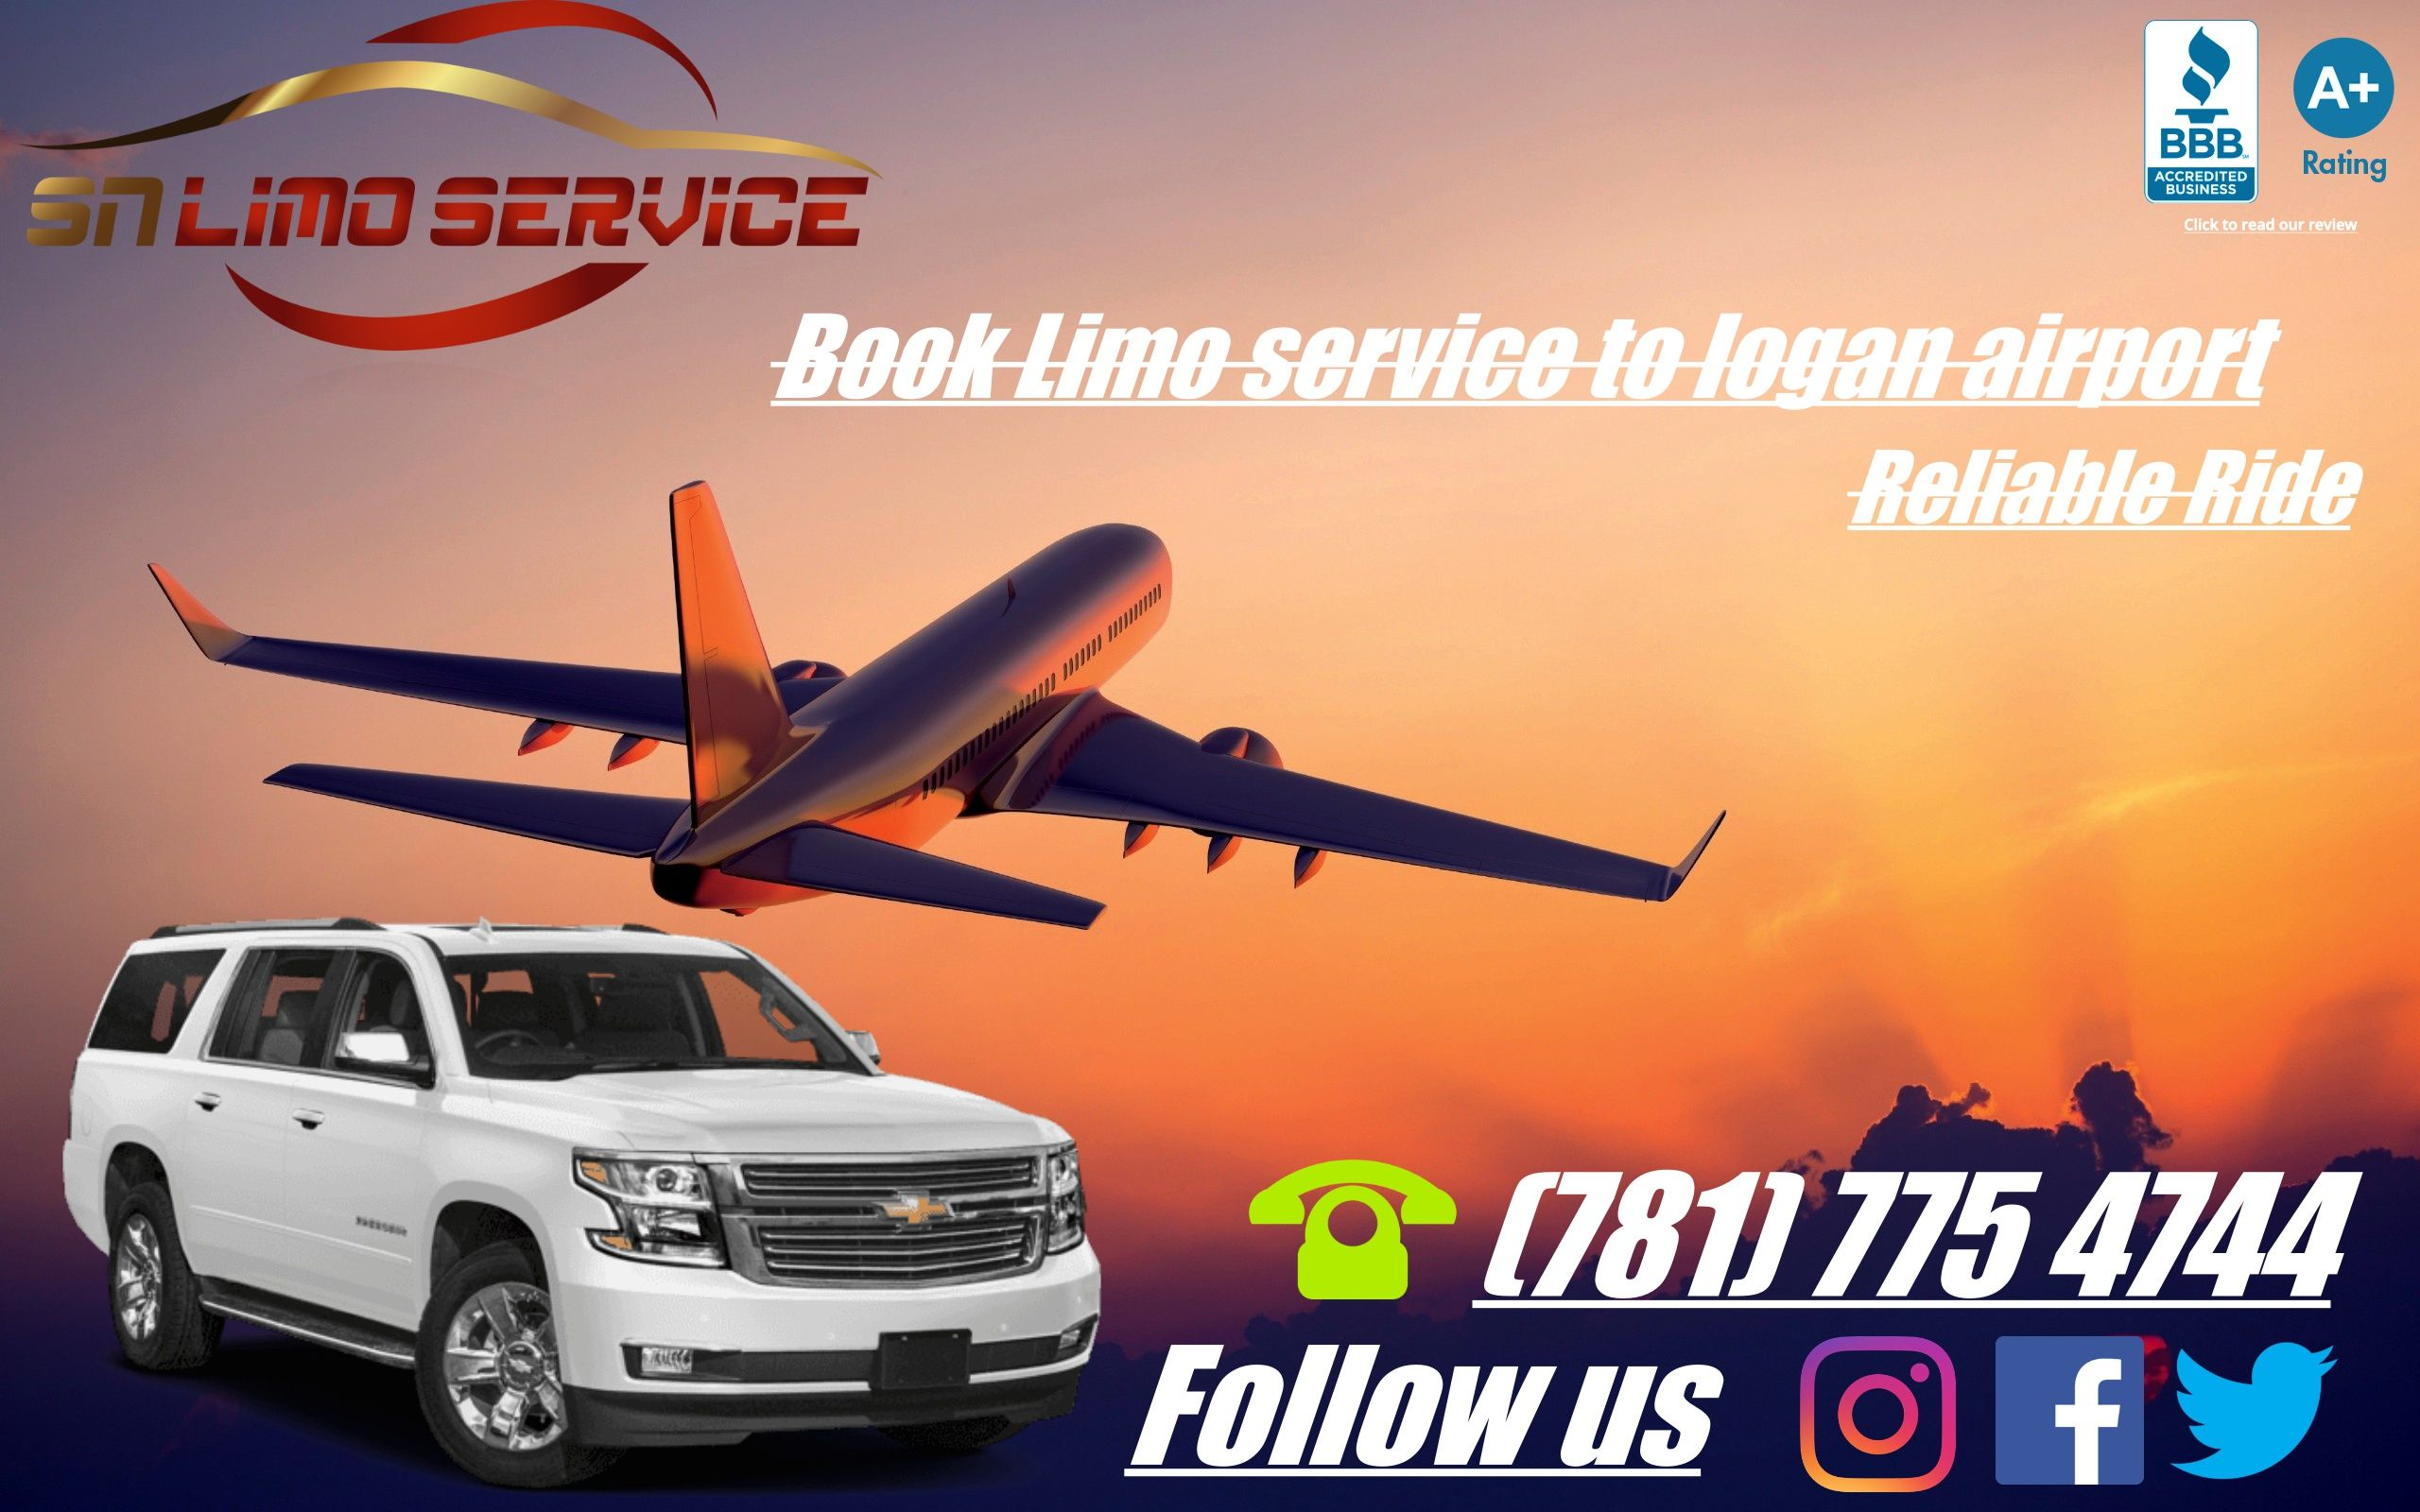 Best service provider in logan Airport...Reliable ride and